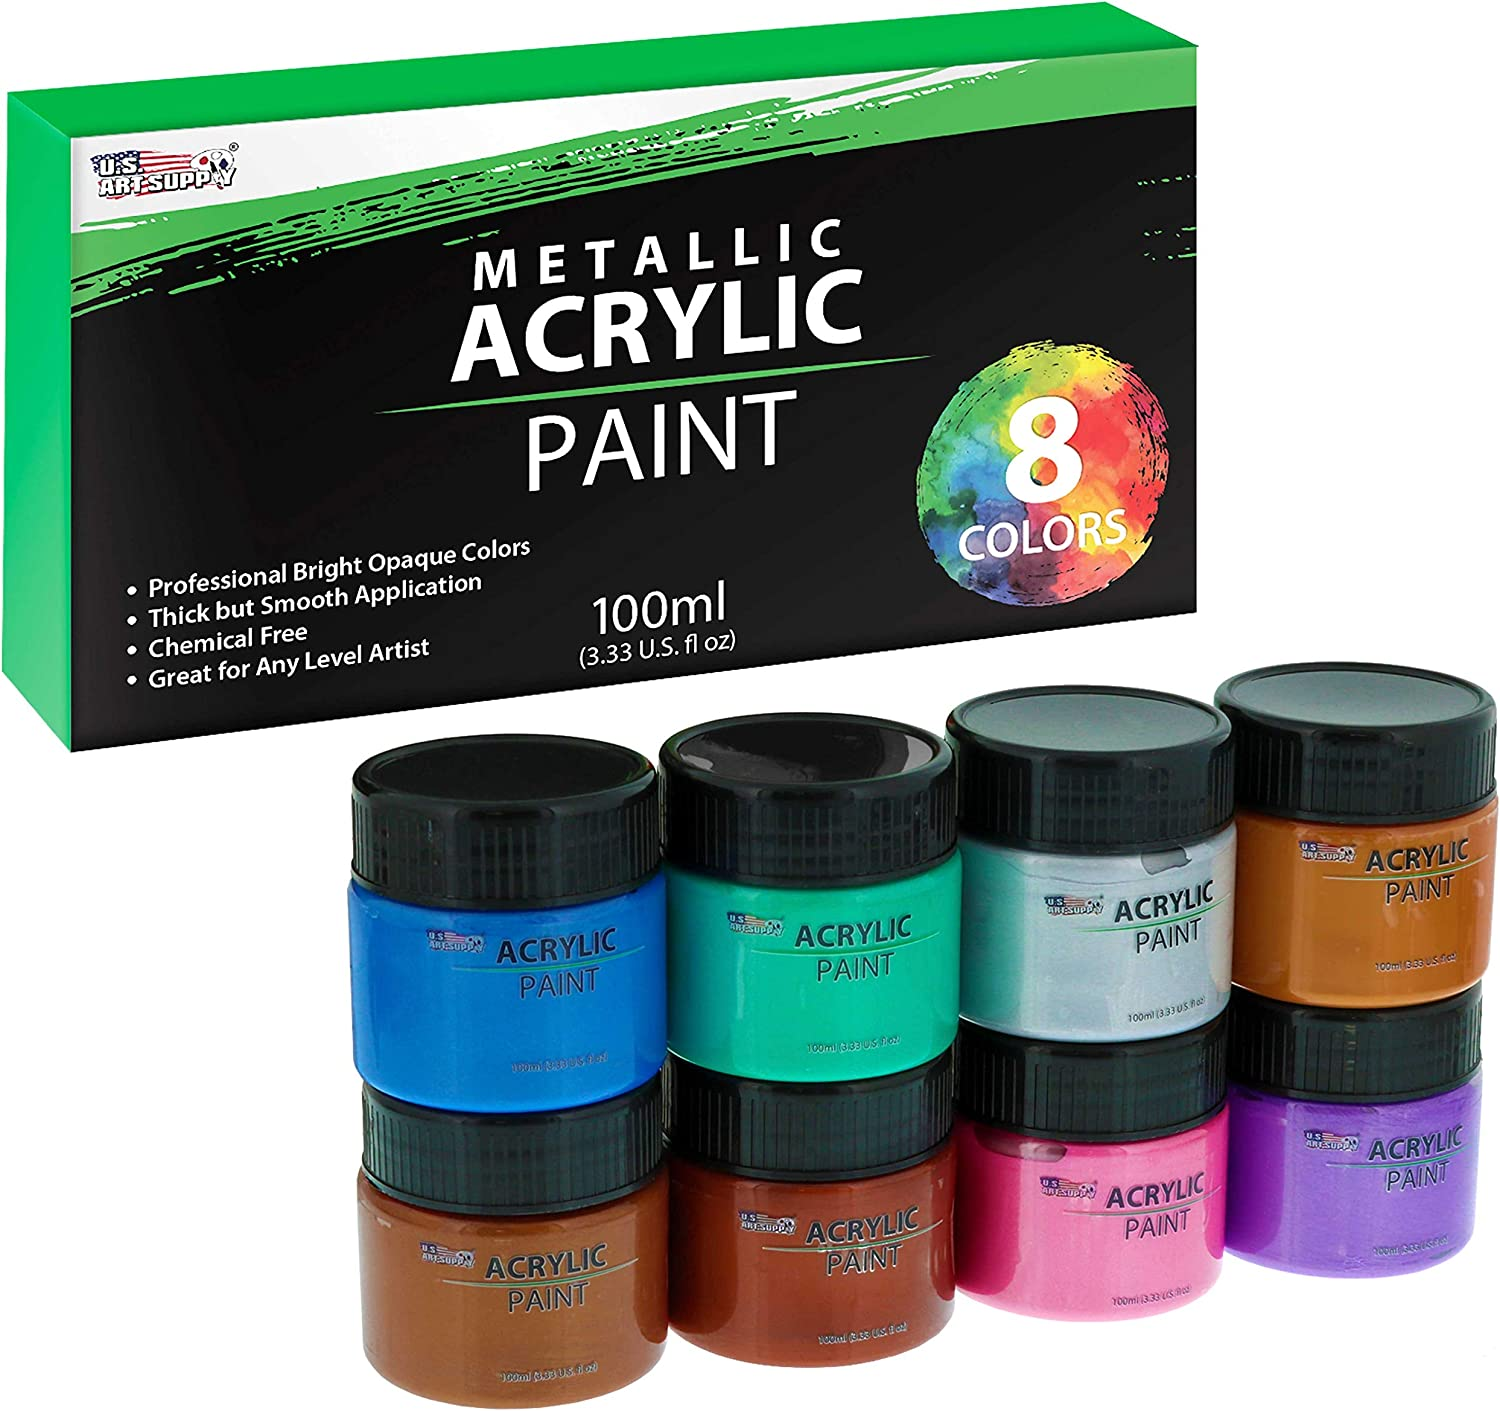 U.S. Art Supply 8 Color Metallic Acrylic Paint Jar Set 100ml Bottles (3.33 fl oz) - Professional Artist Bright and Vivid Pearlescent Metallic Colors great for Acrylic Pouring shimmer effects